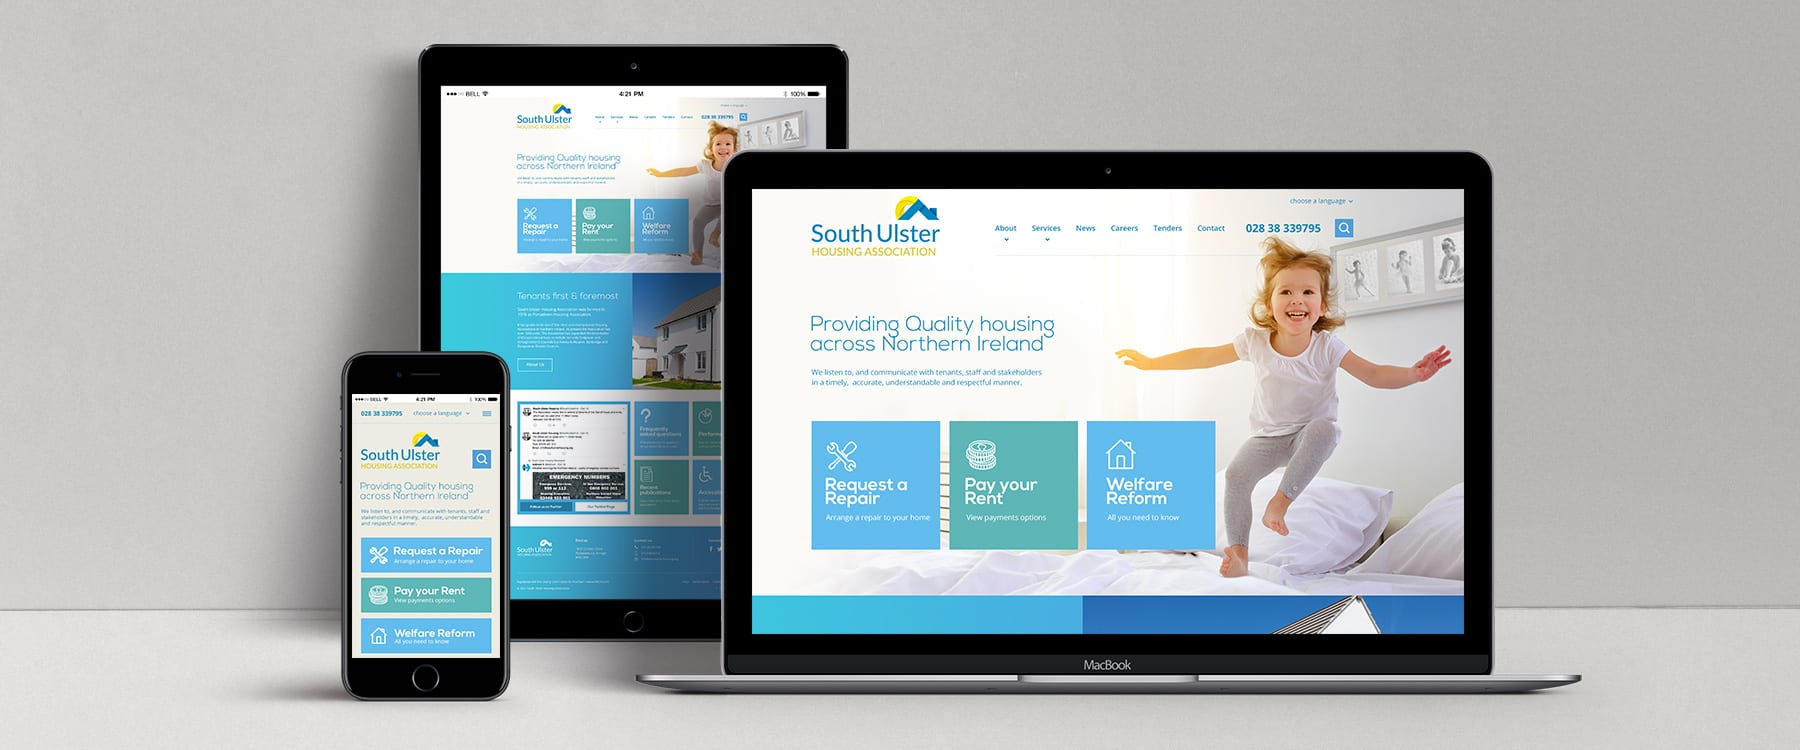 South Ulster Housing Association Image First